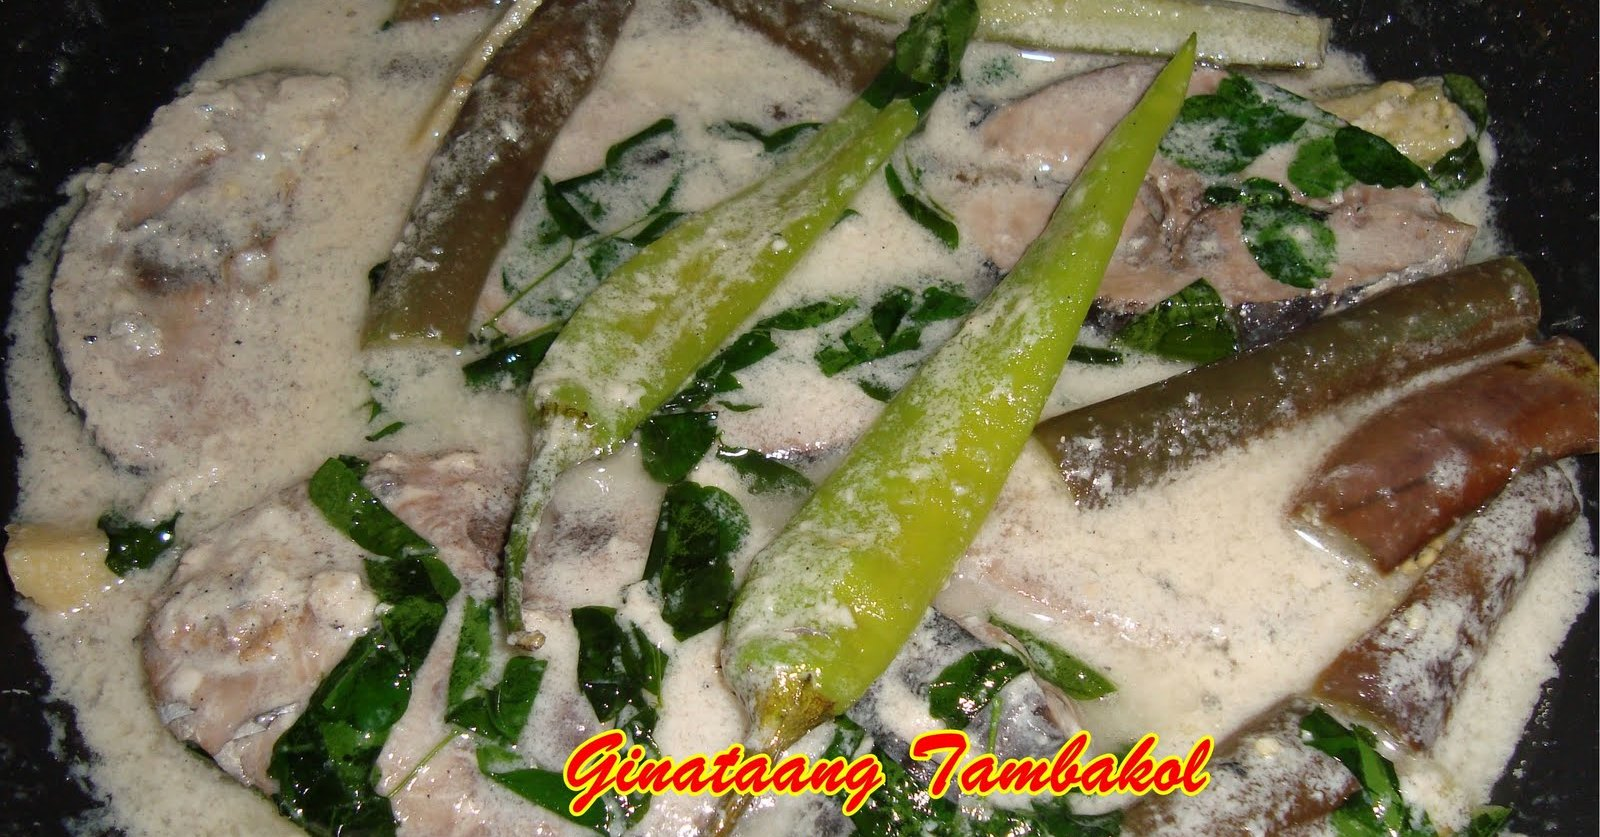 Simple Pleasures Seafood Tambakol Yellowfin Tuna